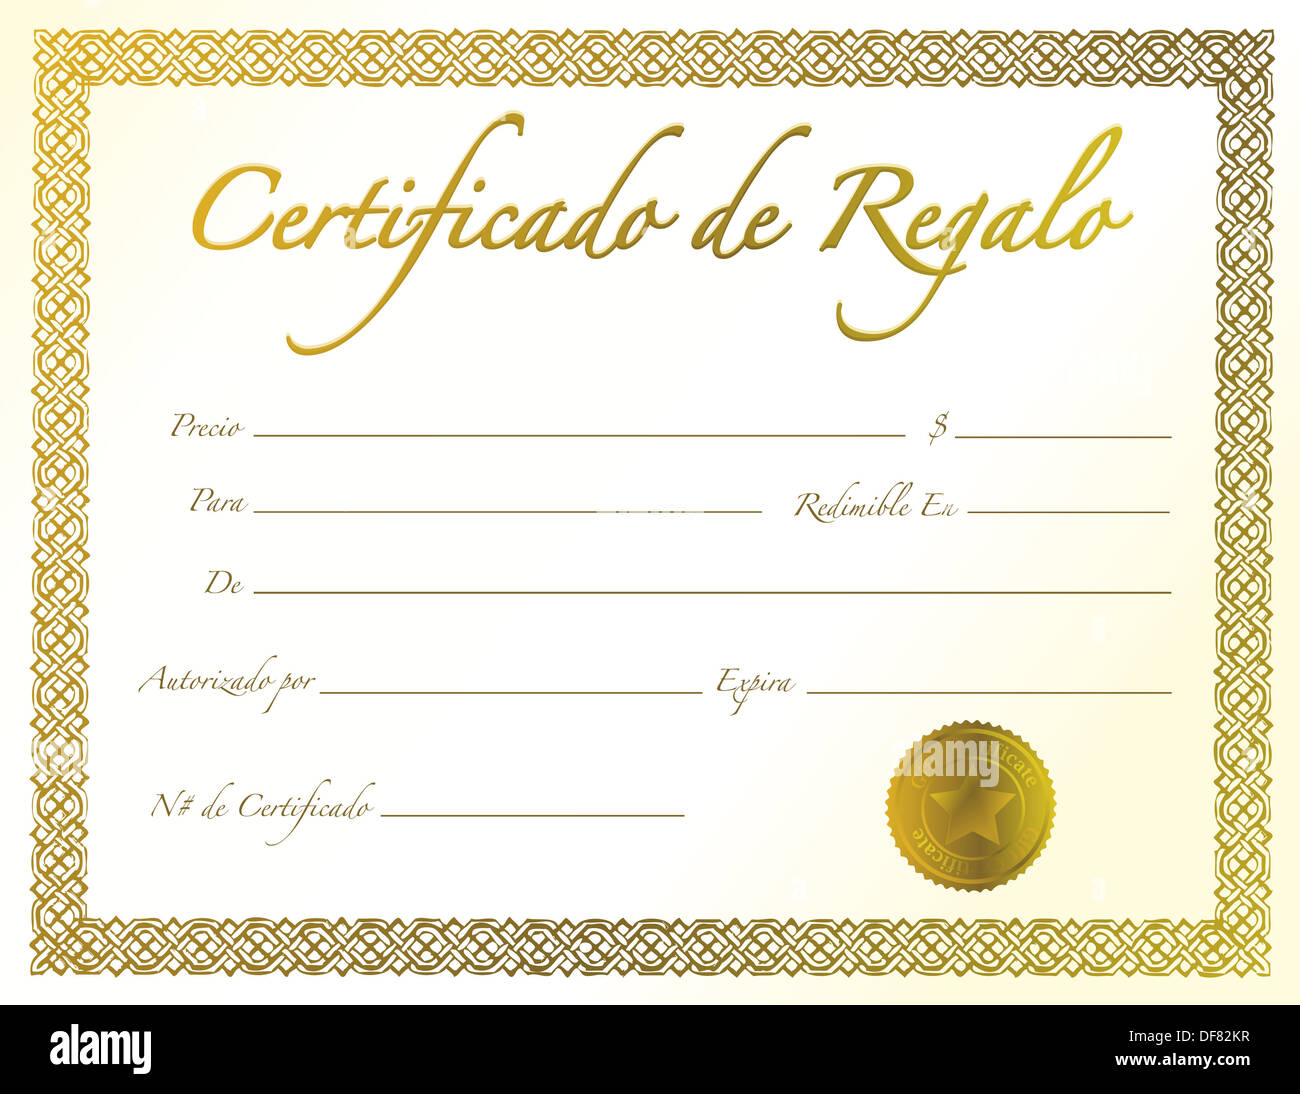 spanish gold gift certificate with golden seal and design border